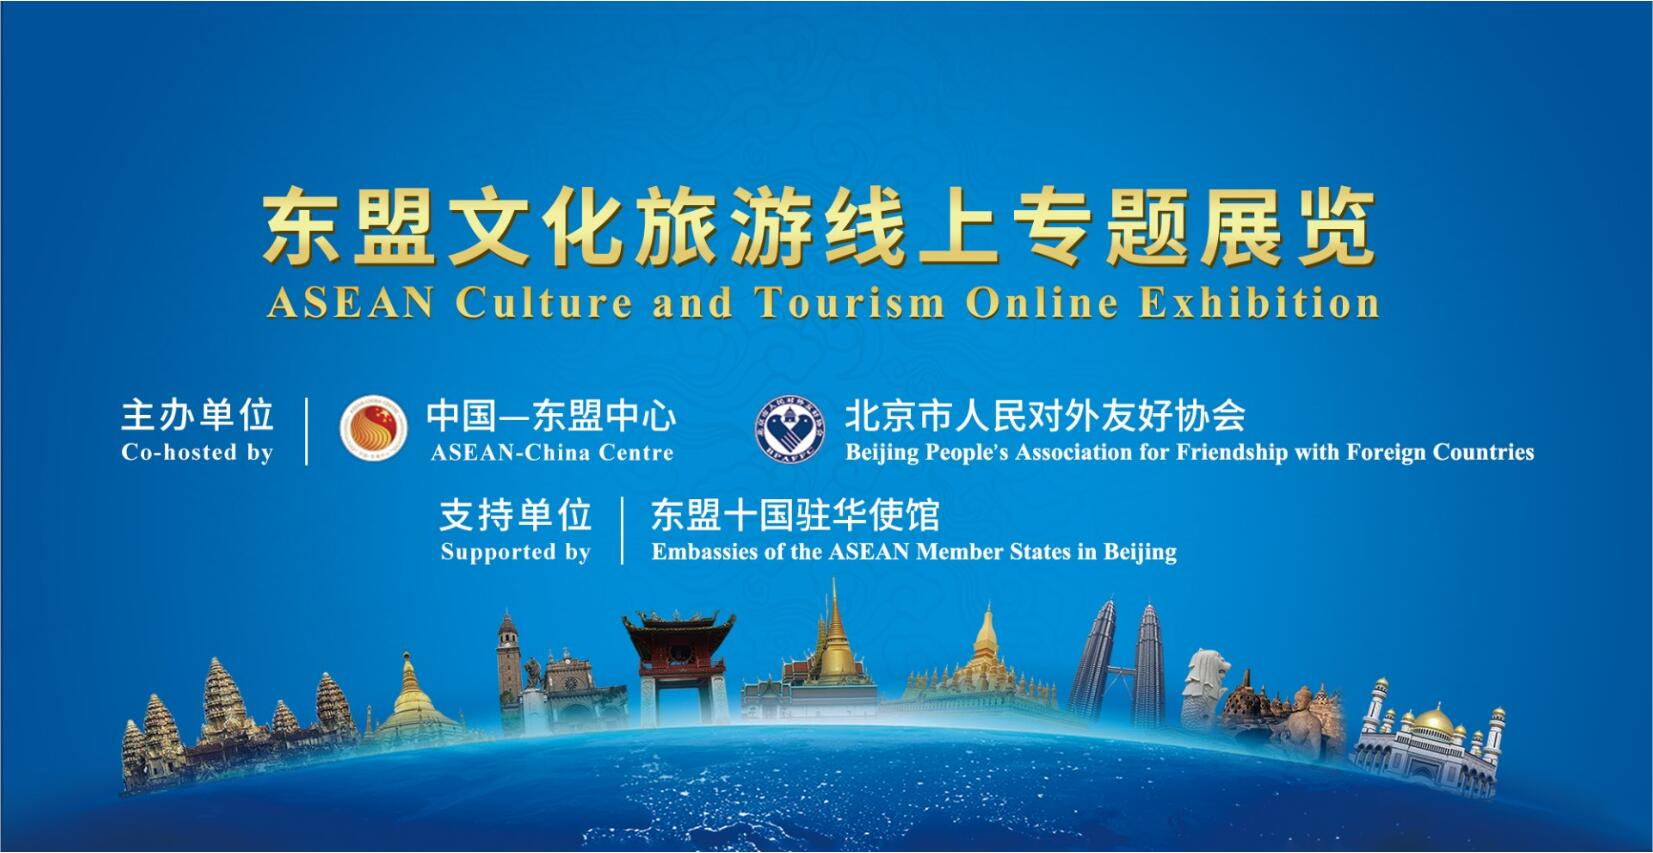 ACC Co-hosted the ASEAN Culture and Tourism Online Exhibition